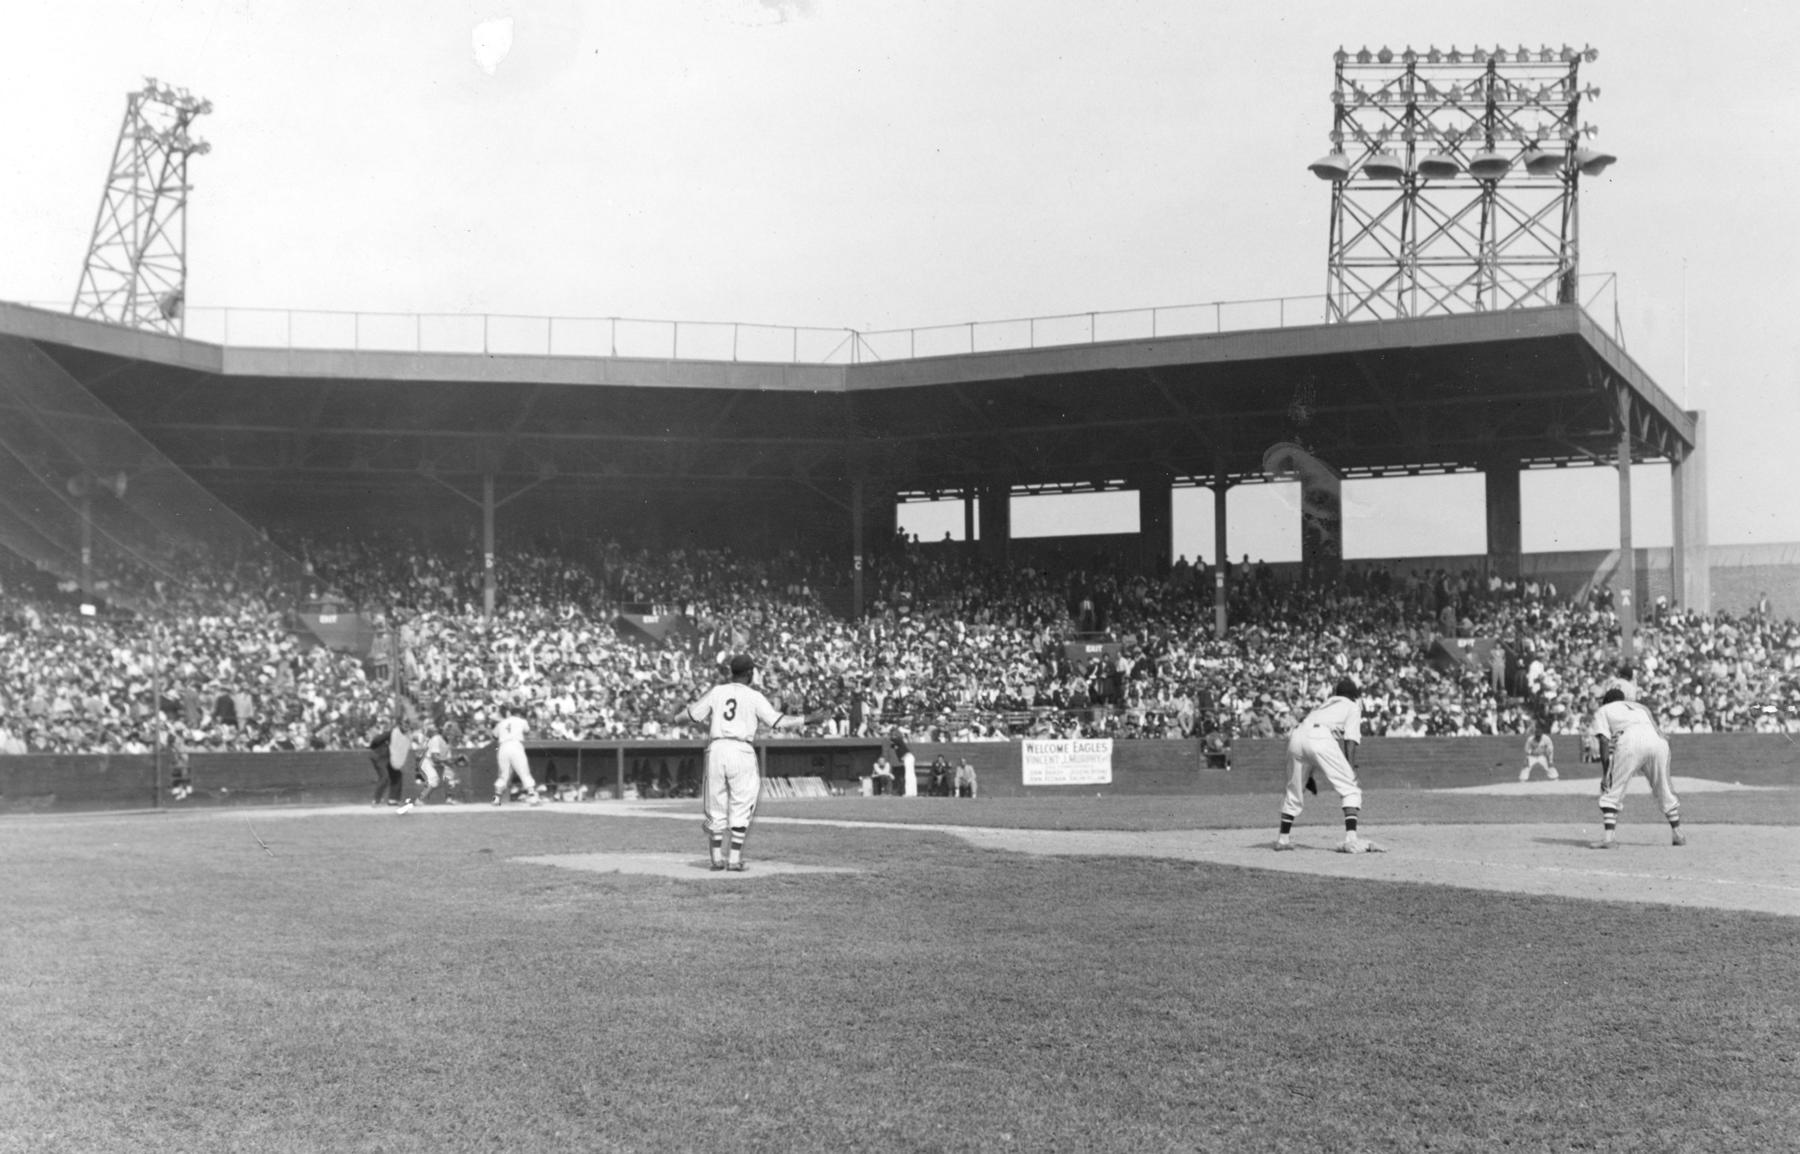 The Newark Eagles host a game at Ruppert Stadium in 1942. BL-98-2008-9 (Larry Hogan / National Baseball Hall of Fame Library)